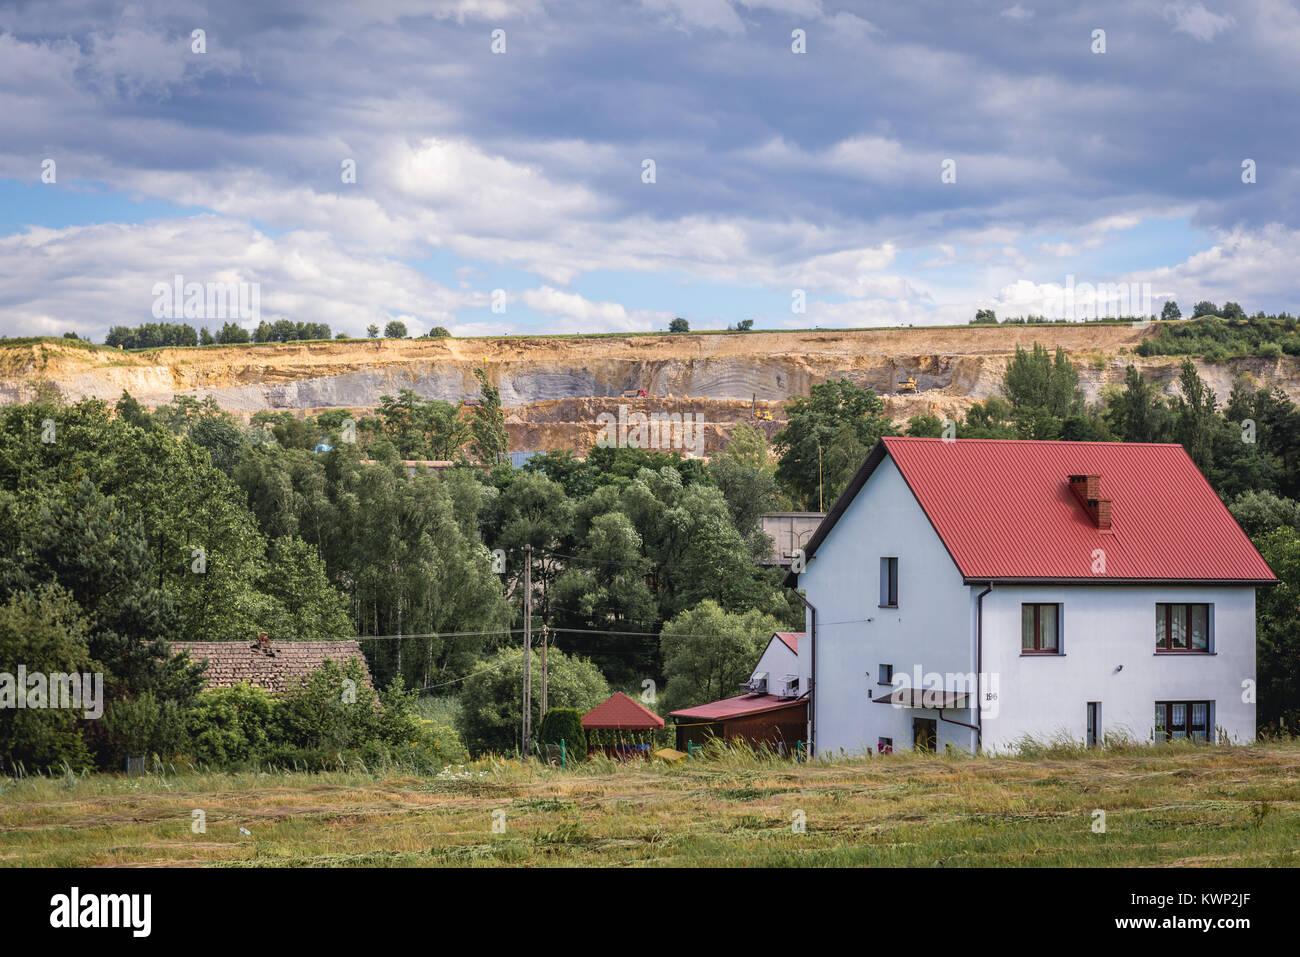 Porphyry mine in Zalas village in Lesser Poland Voivodeship of Poland - Stock Image